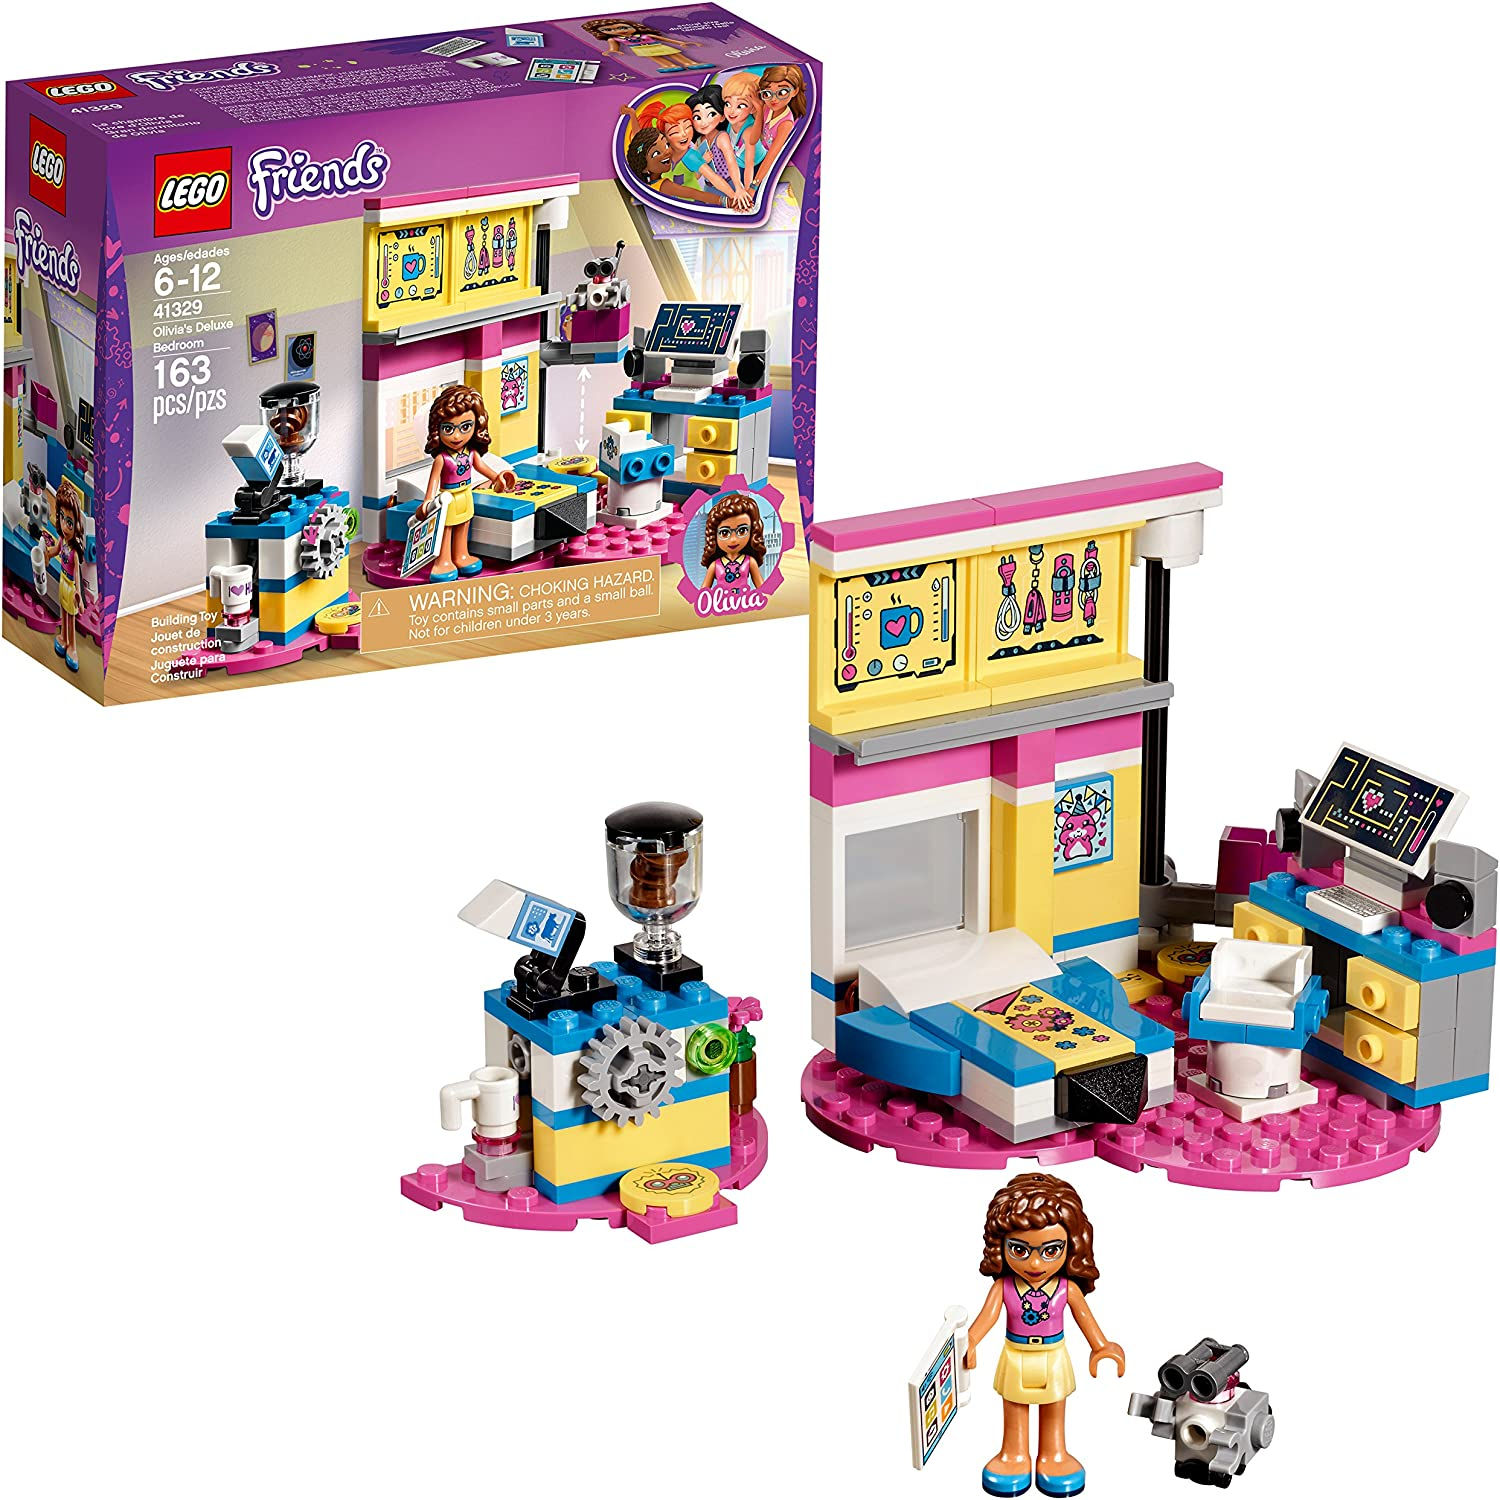 Amazon Com Lego Friends Olivia S Deluxe Bedroom 41329 Building Set 163 Piece Toys Games